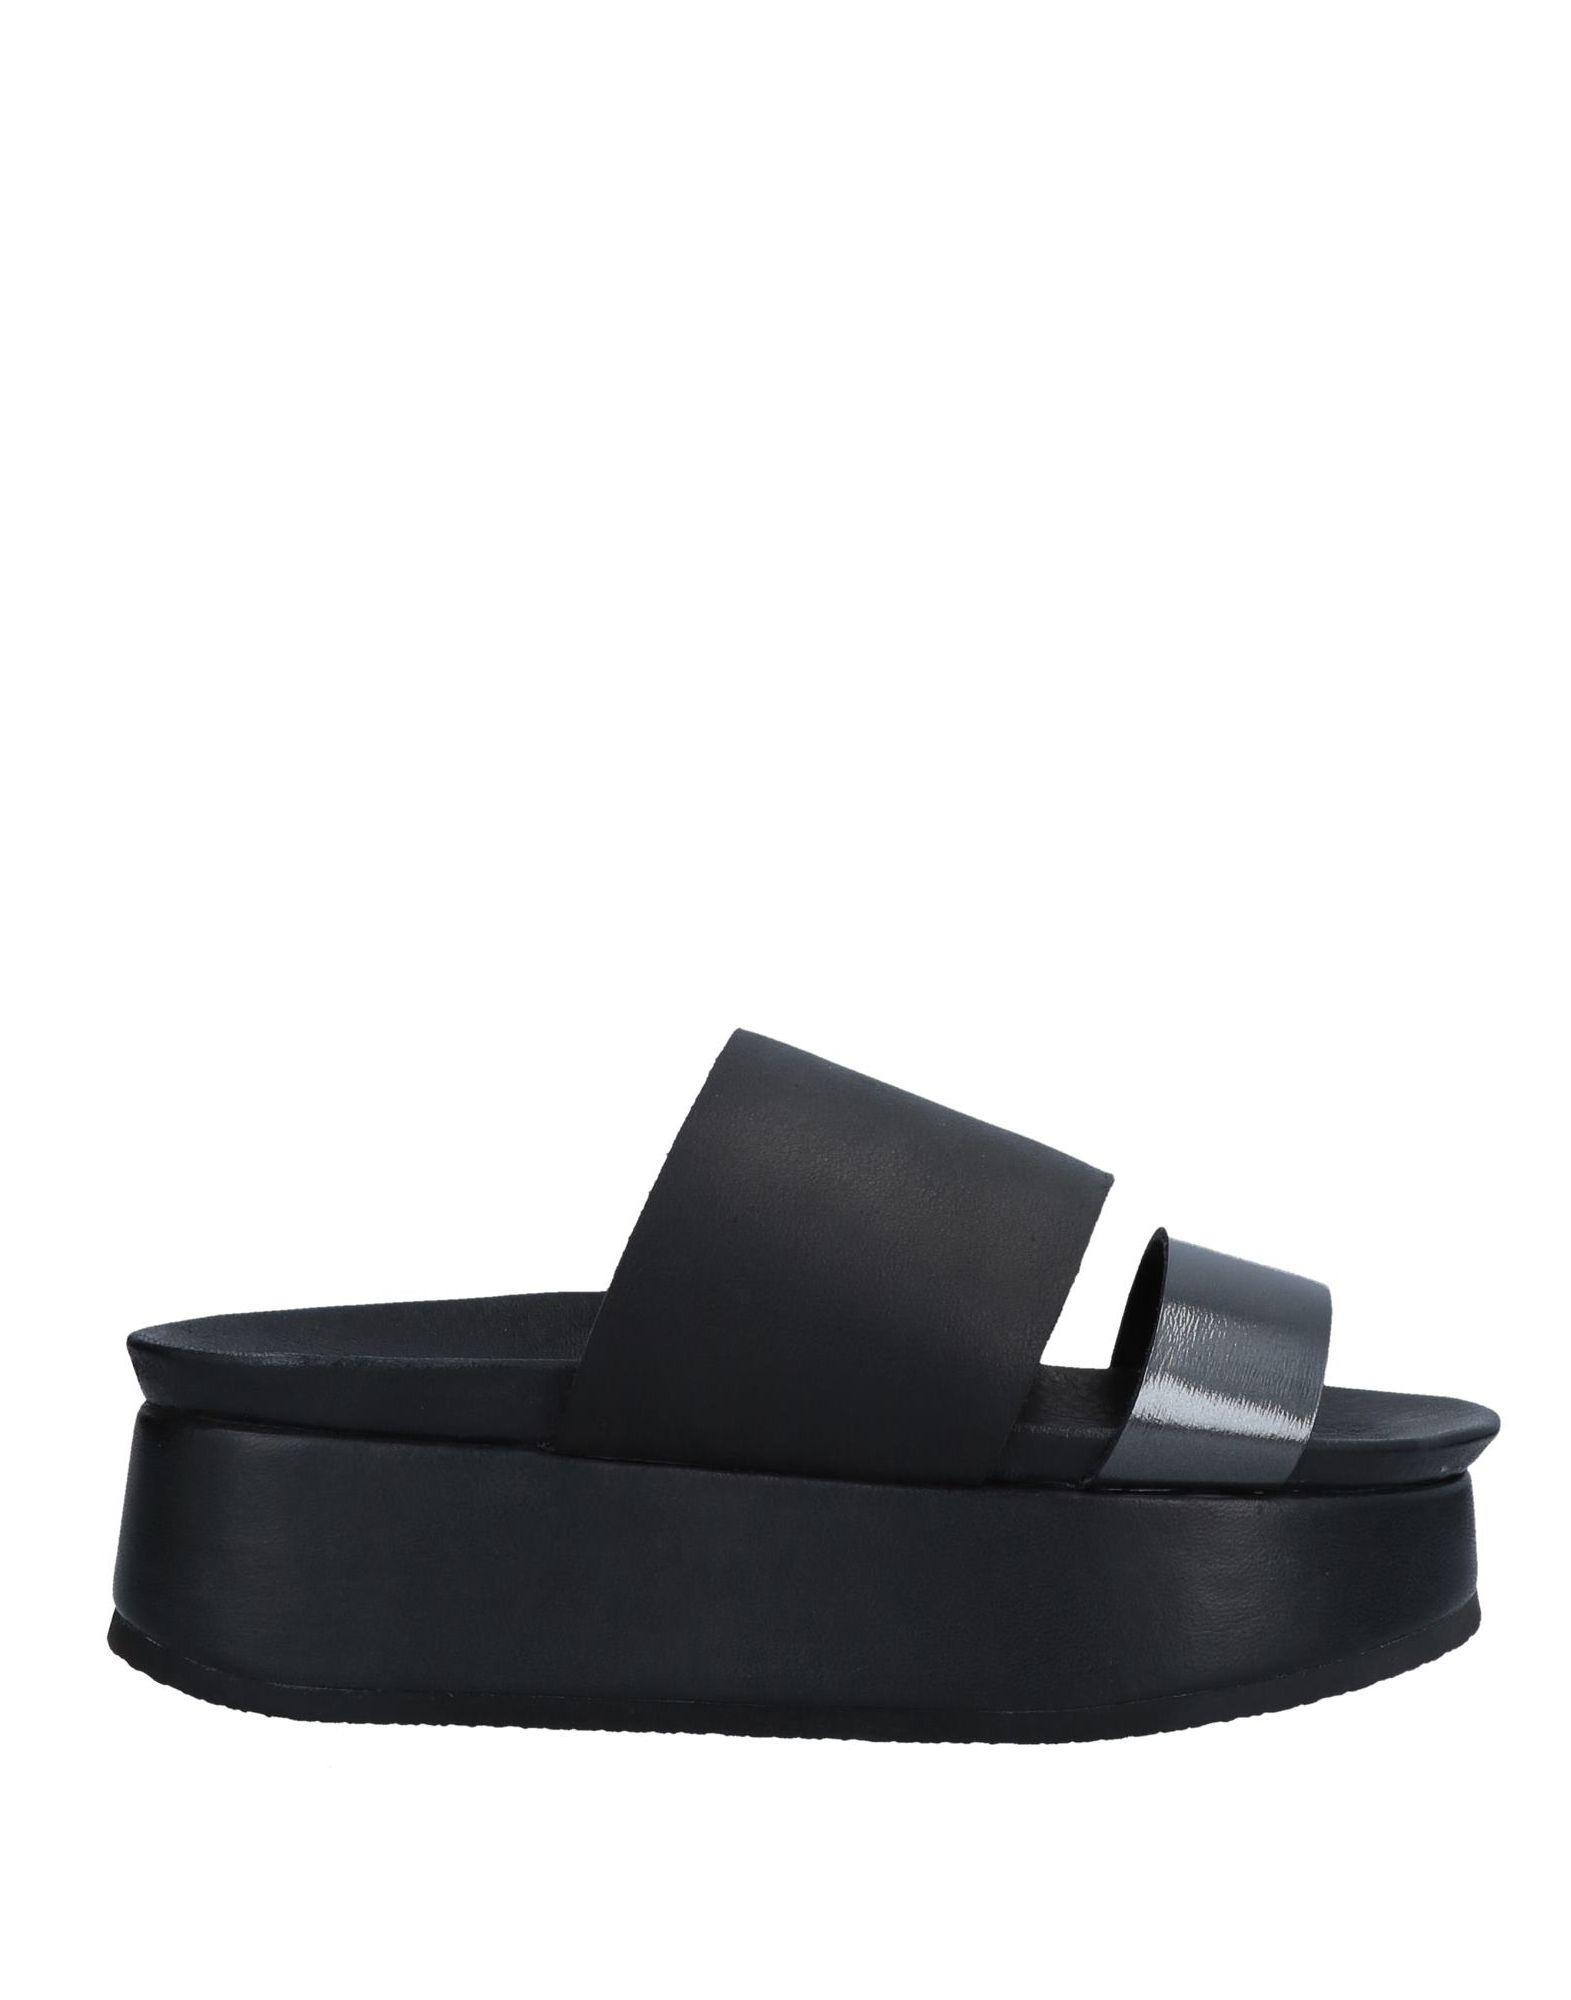 Sandals Peter Lyst Non Black in BvxE4qSw8